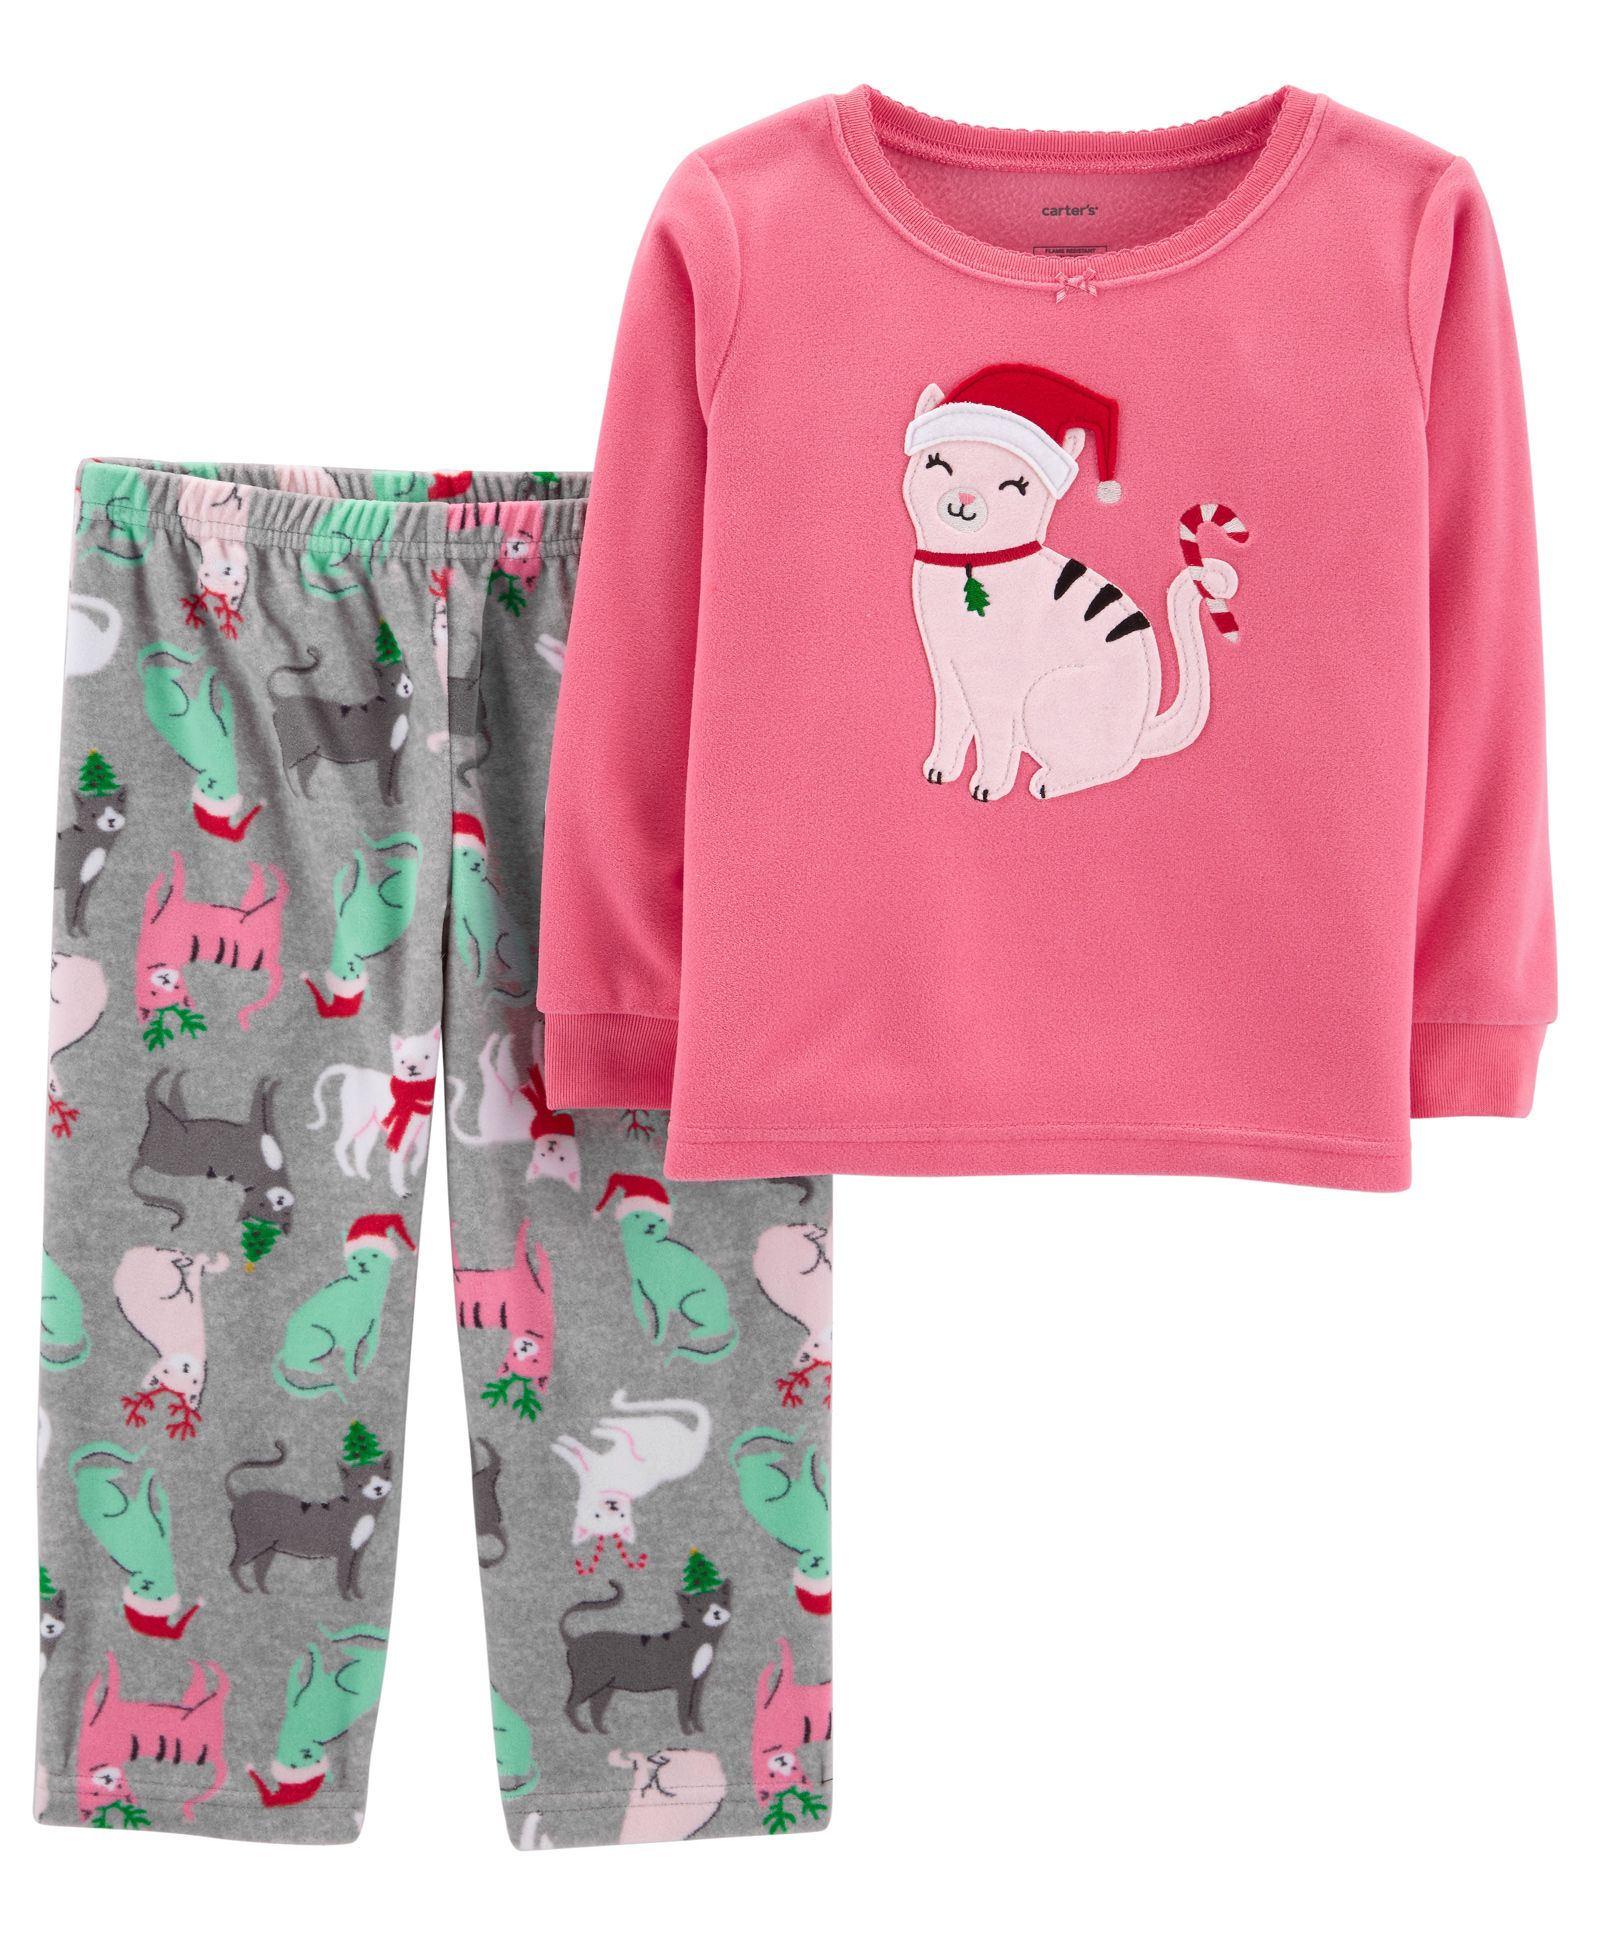 e7ba63531 Buy Carters 2 Piece Christmas Cat Fleece Pajama Pink   Grey for ...